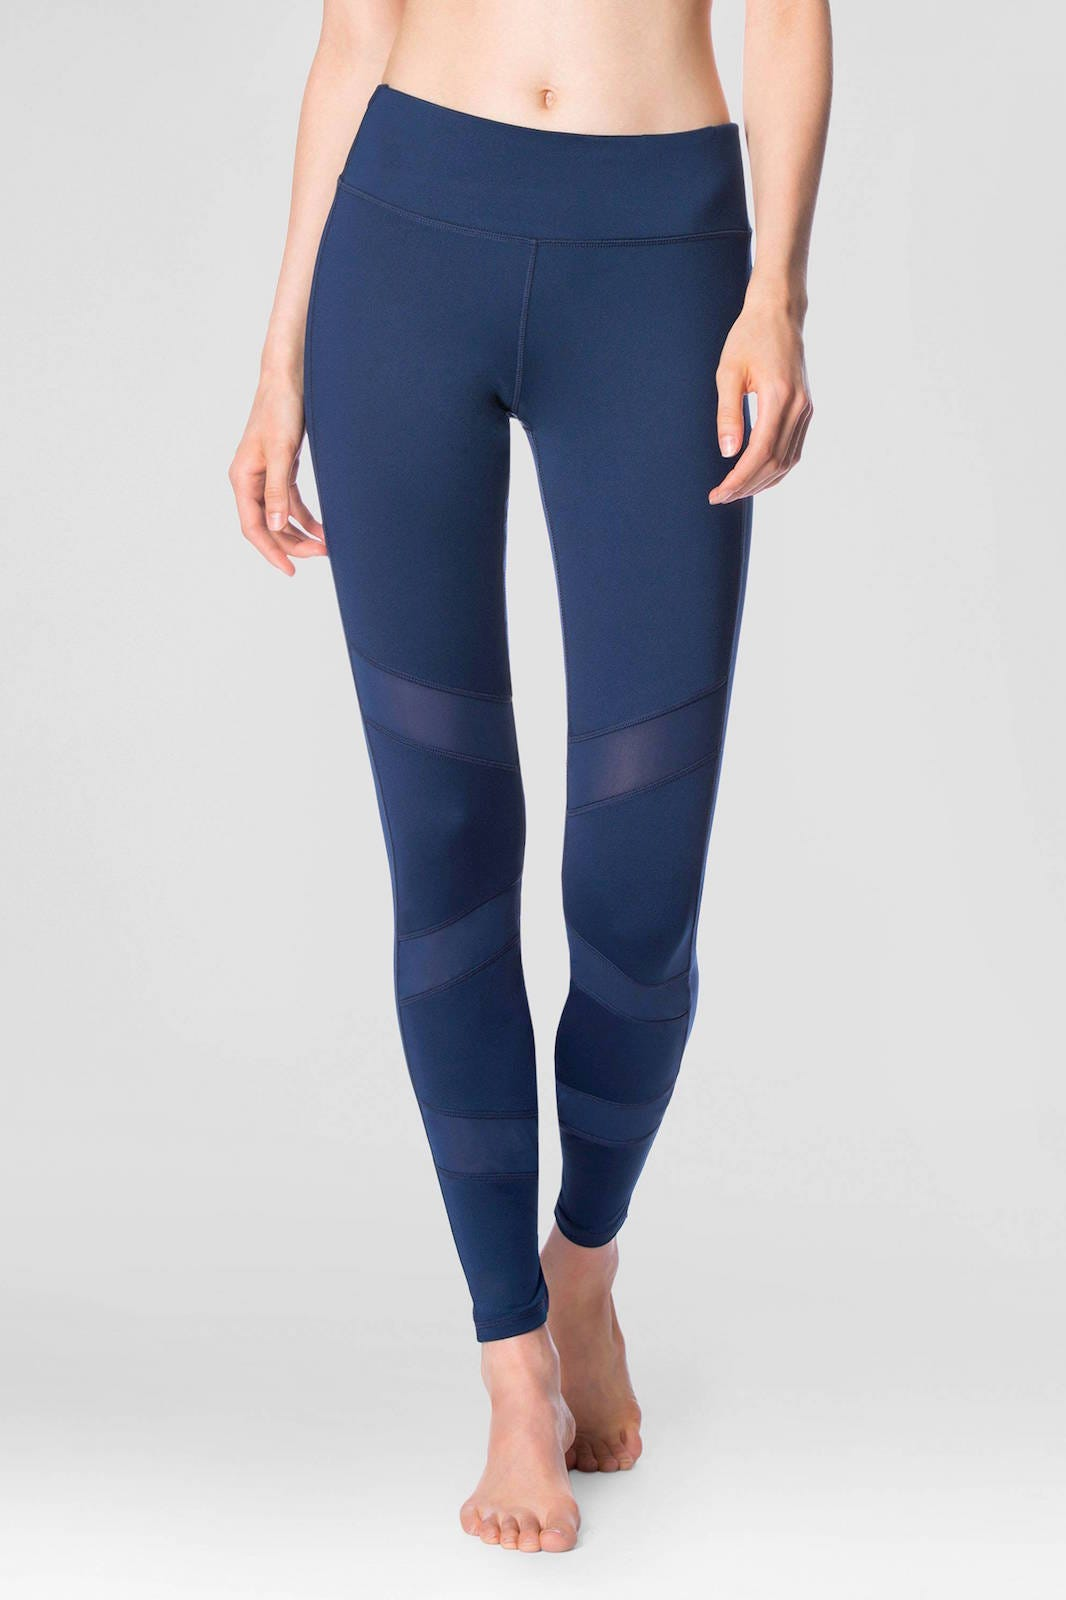 50e21521cc4290 Best Yoga Pants, Yogi Leggings - Cute Workout Clothes